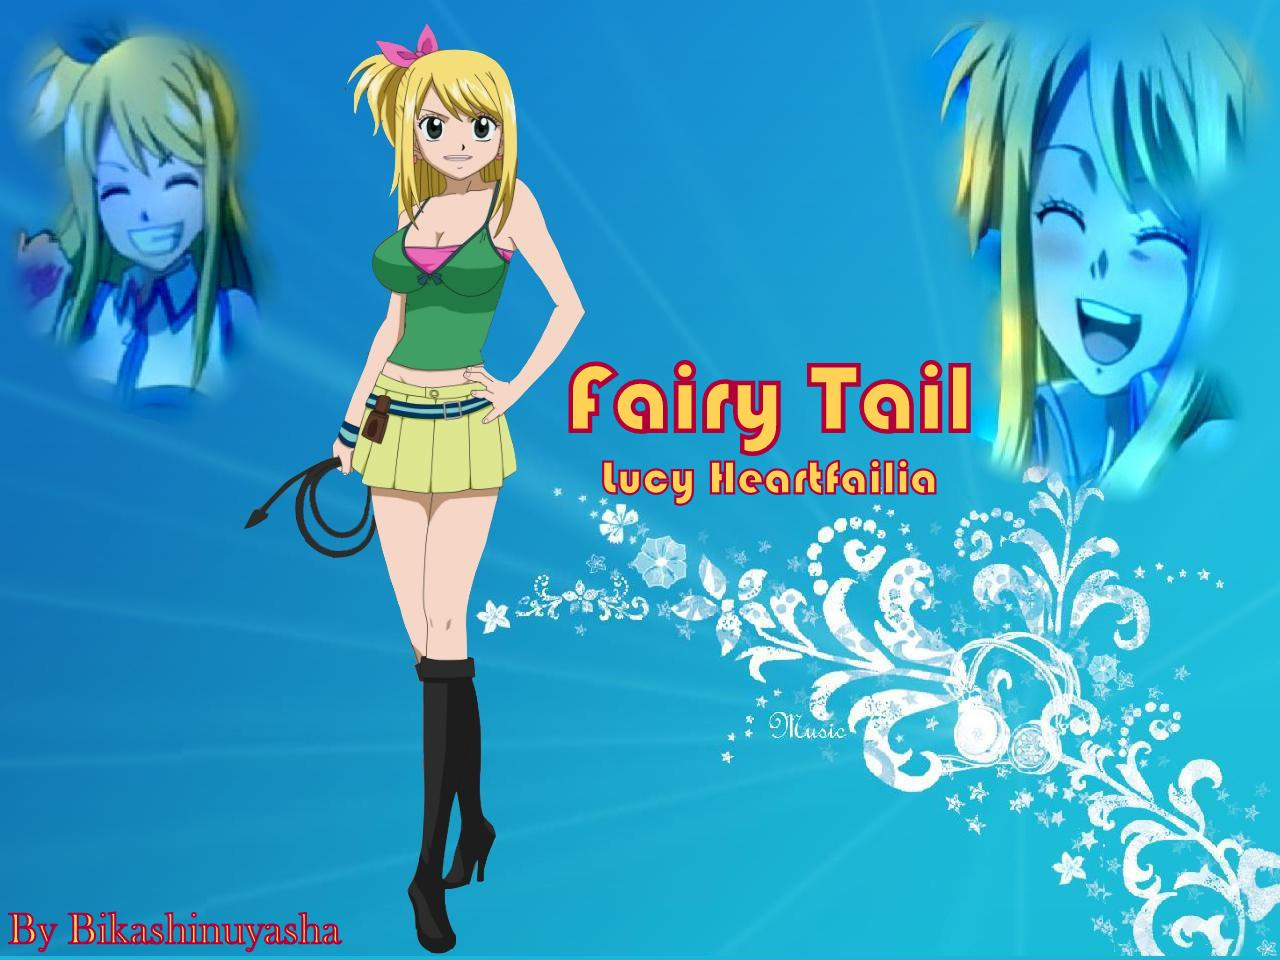 Fairy Tail Guild Of Magnolia Images Lucy Heartifilia HD Wallpaper And Background Photos